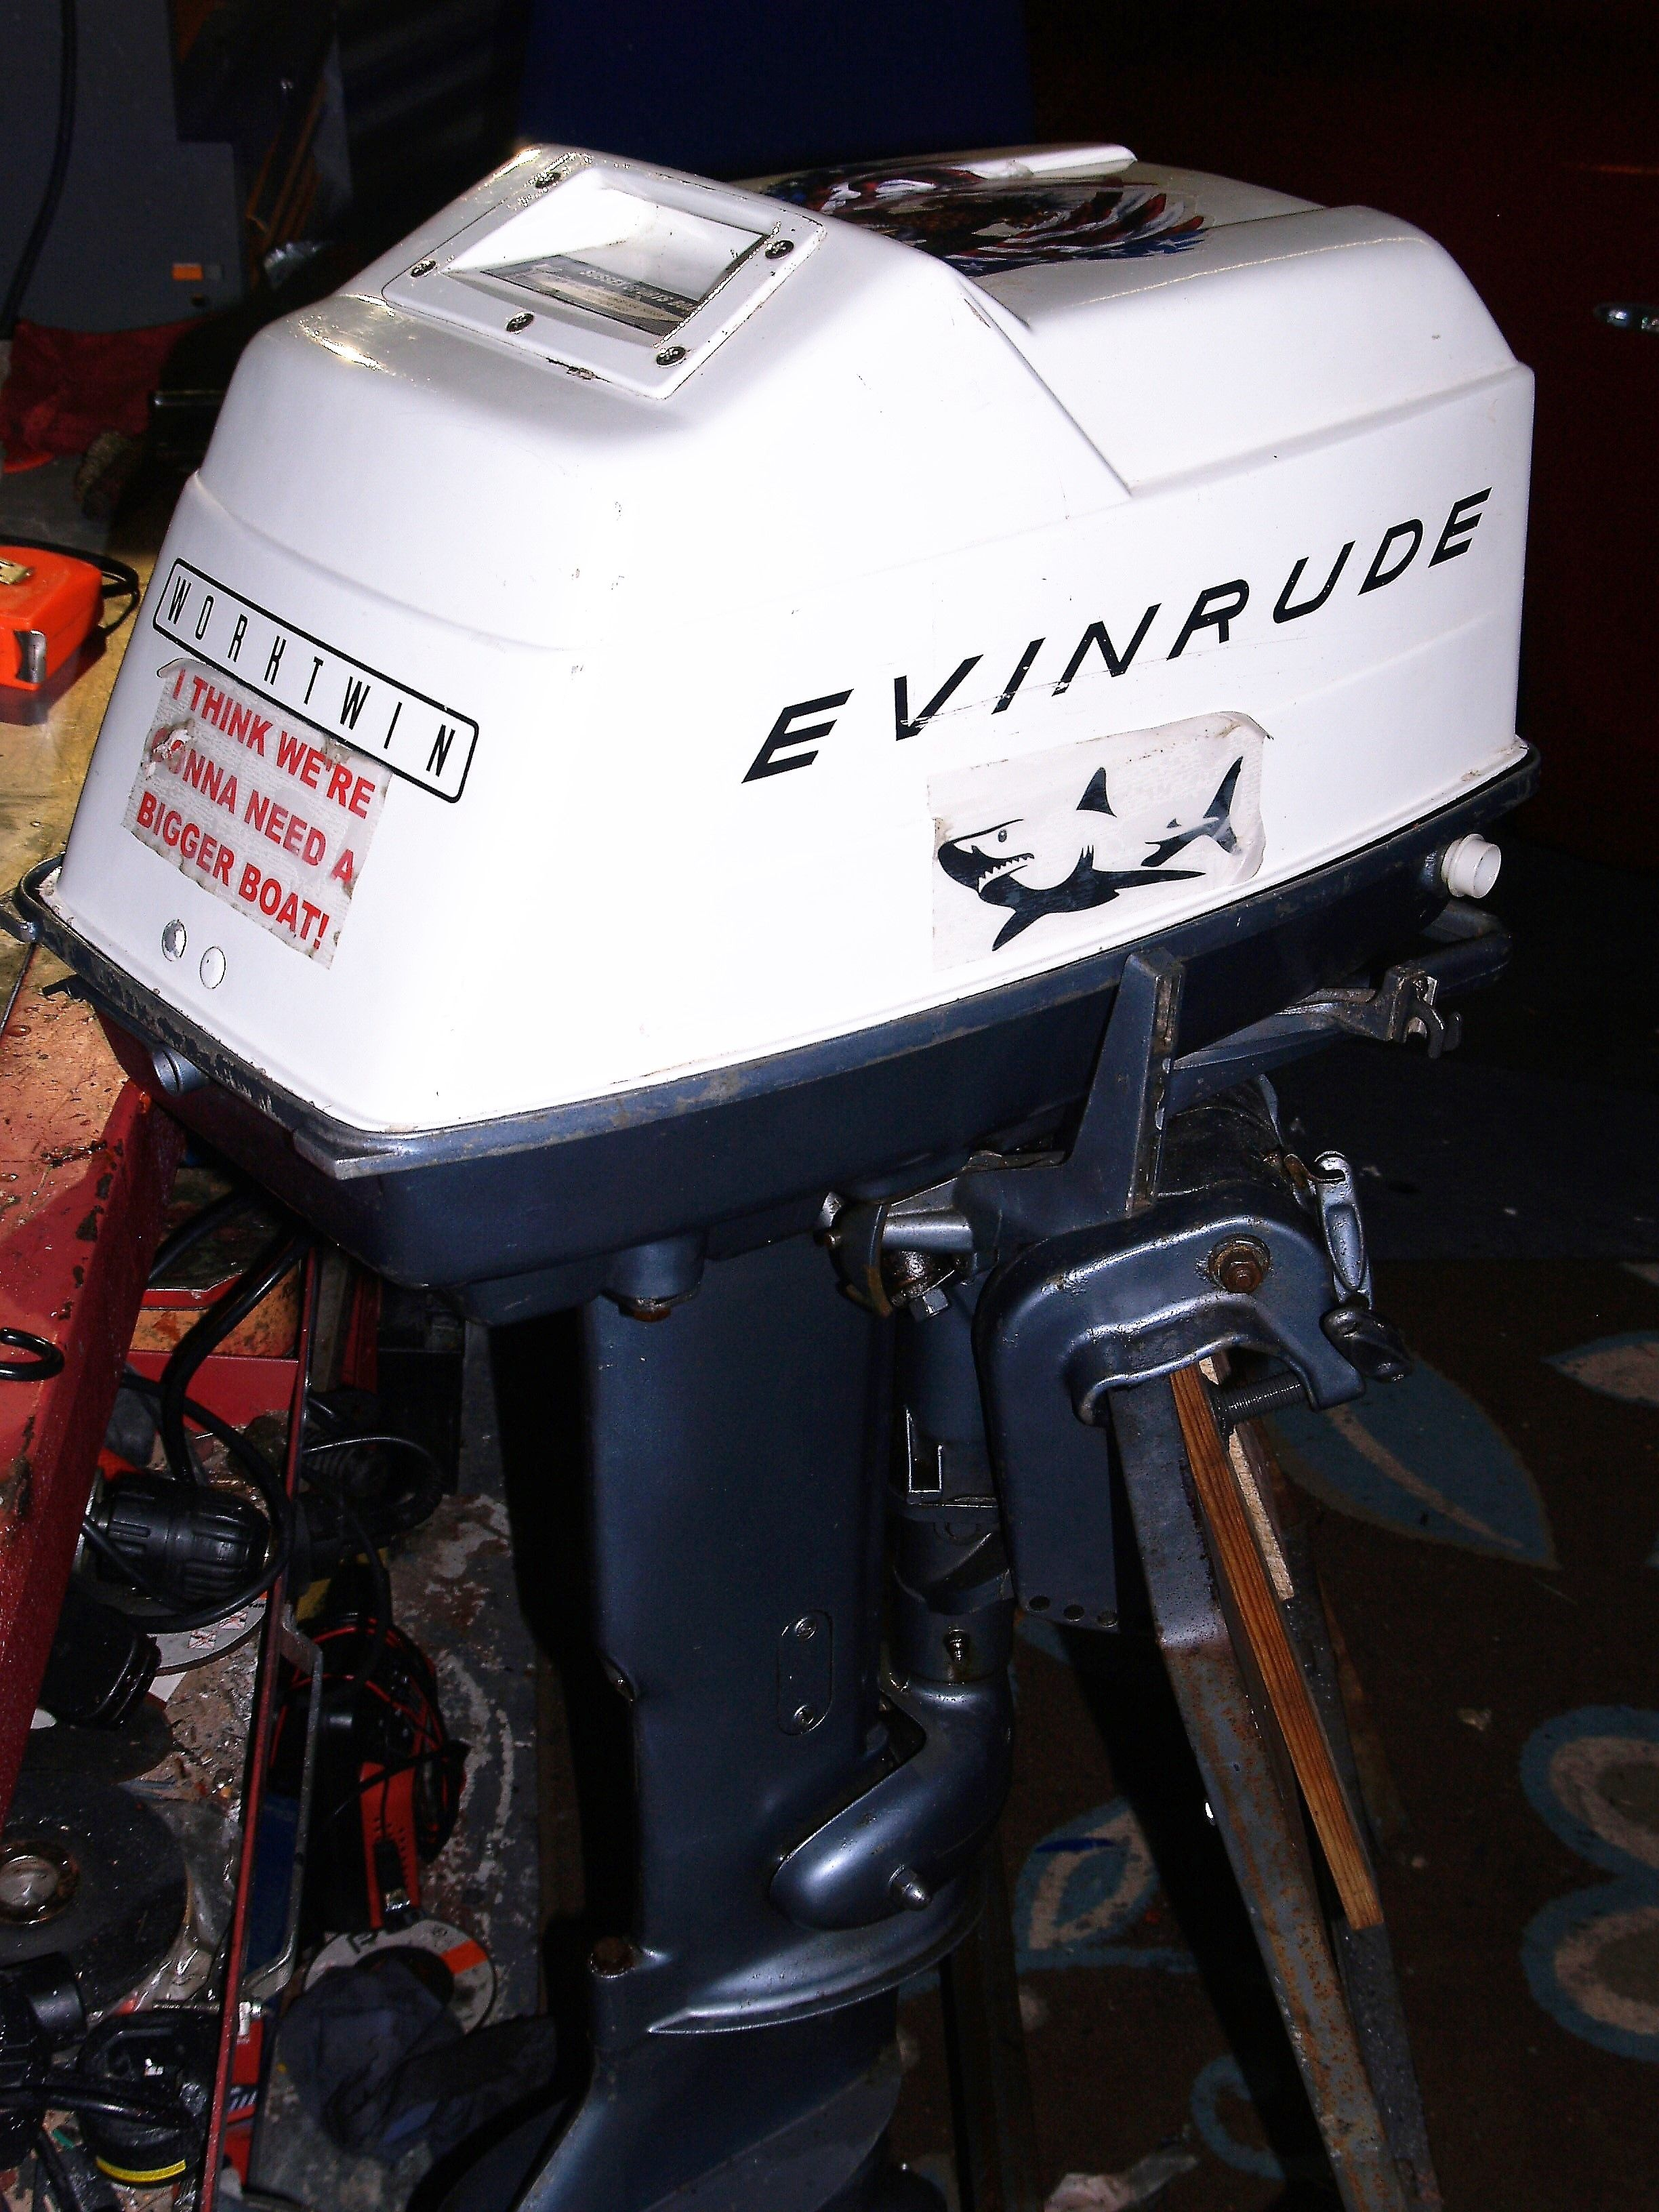 its a 15503c 15hp evinrude worktwin year i don t really know anyone know  [ 2448 x 3264 Pixel ]